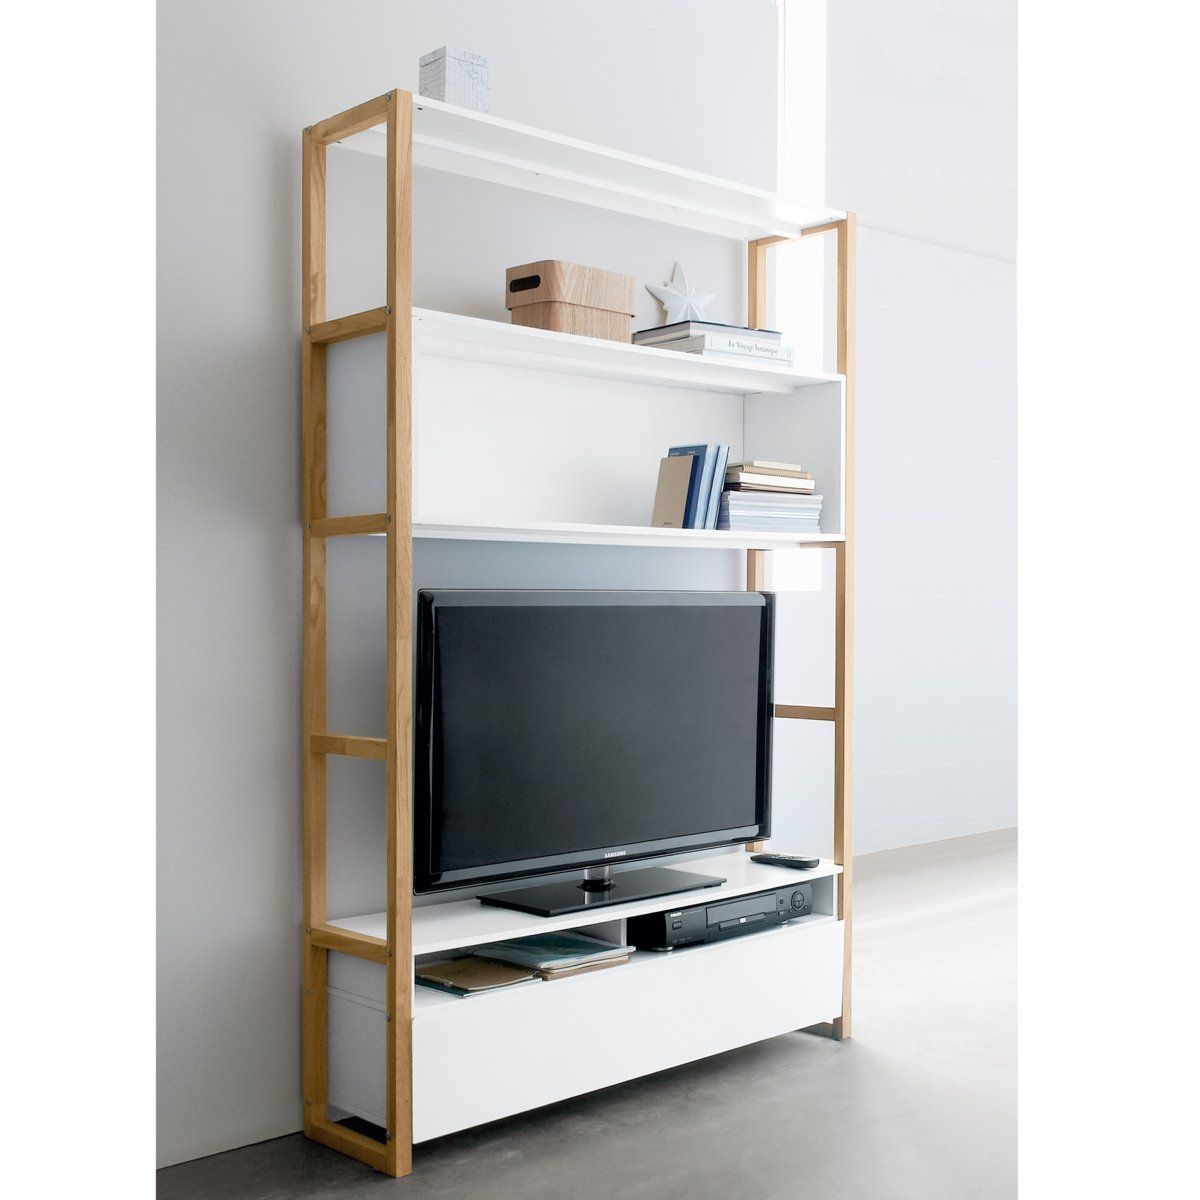 Etagere pour tv topiwall for Meuble etagere tv